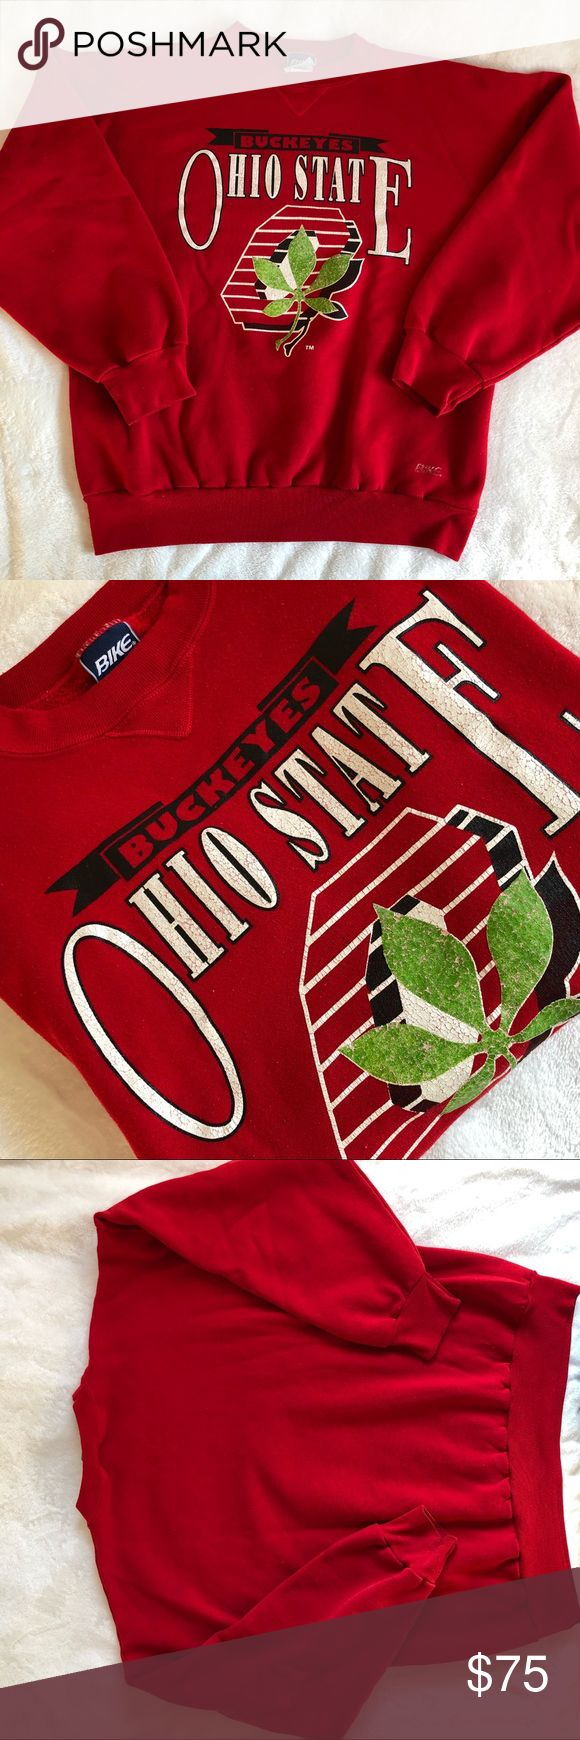 VINTAGE Ohio State pull over ☘️ cozy pull over sweater! Size XL. Can fit a man or be a baggy boyfriend sweater for a women!☘️ either way is cute and works! Sweaters